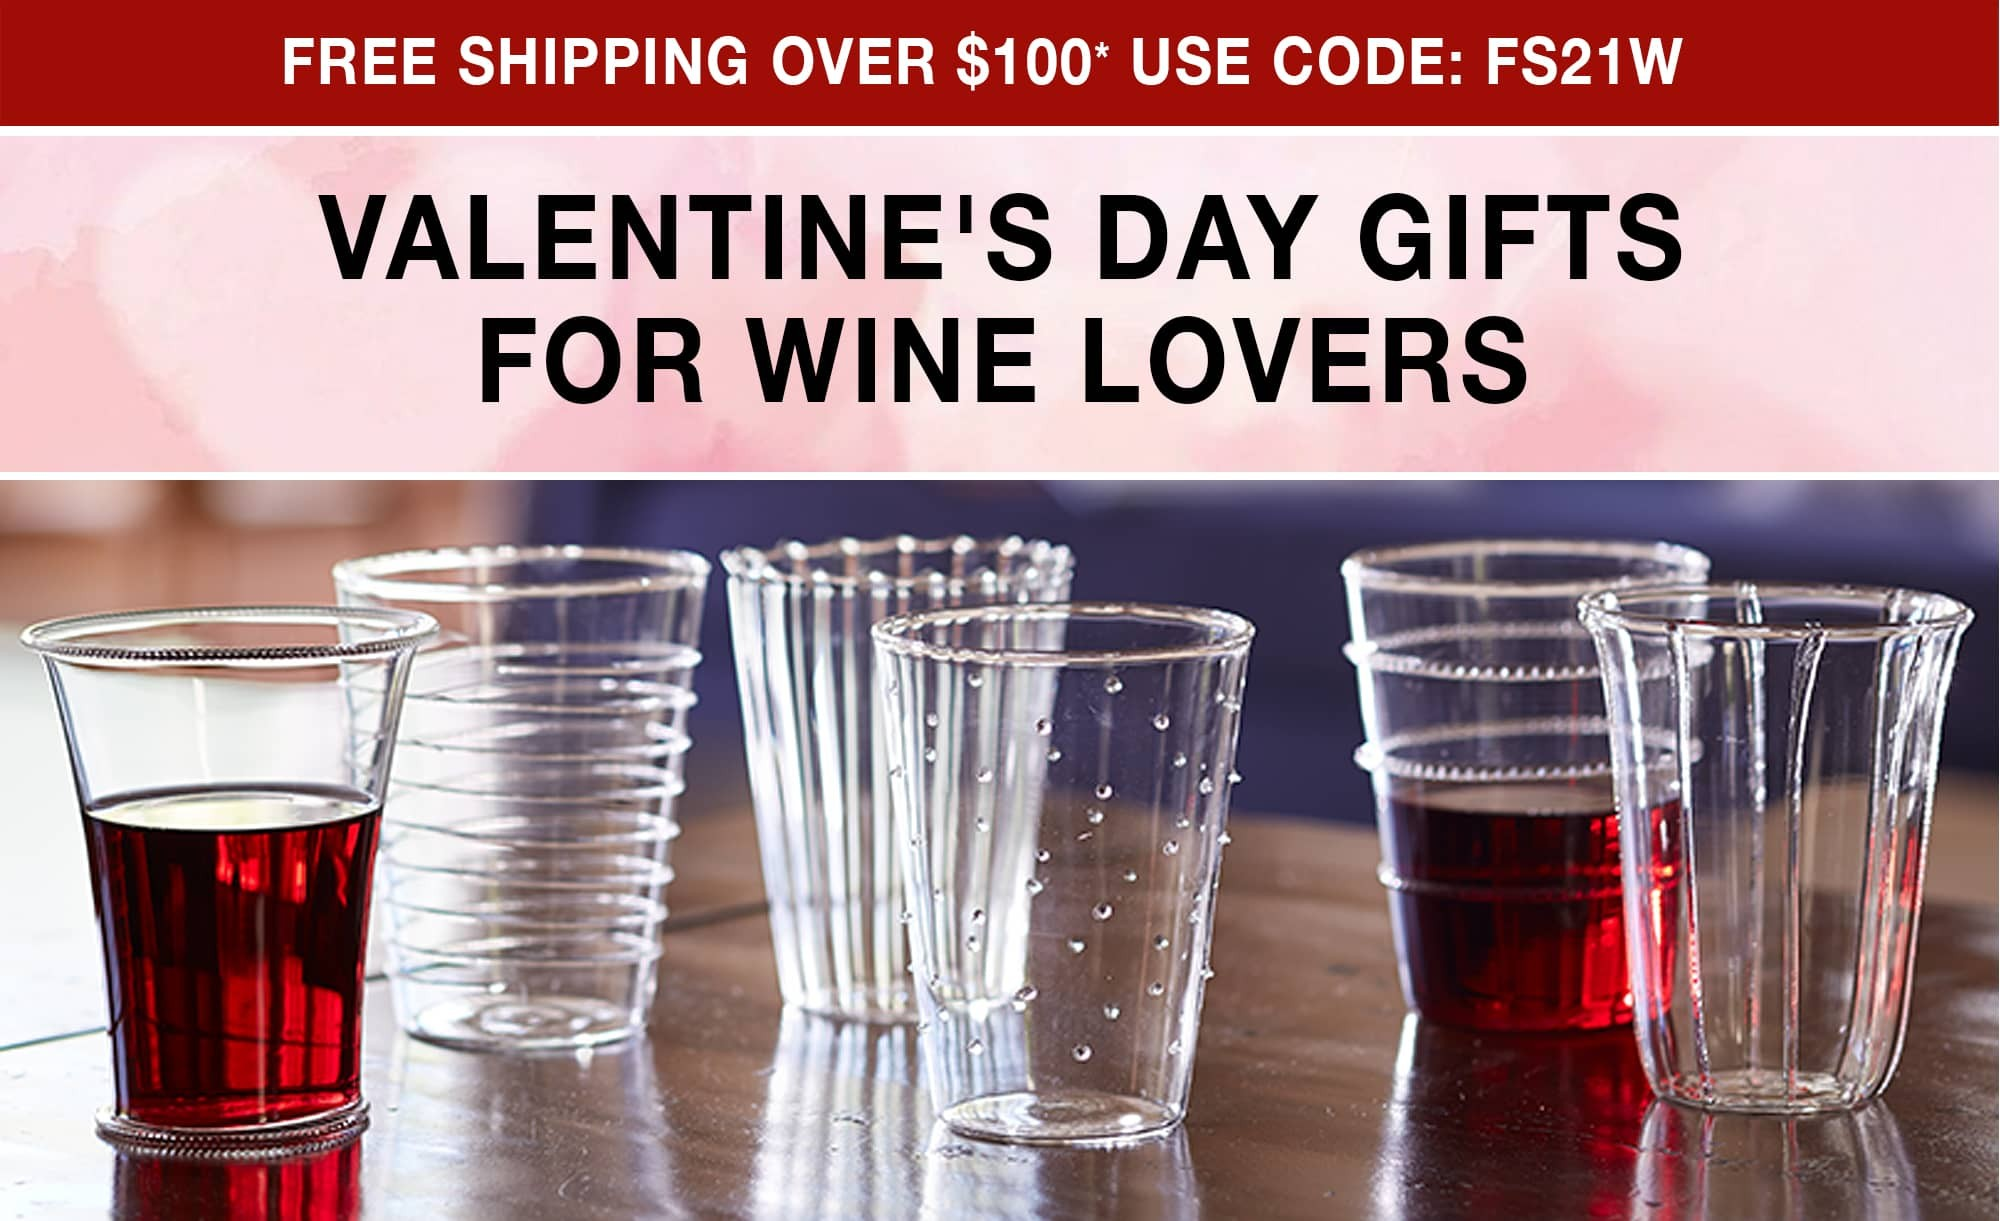 Valentine's Day Gifts for Wine Lovers - Free Shipping Over $100 use code FS21W